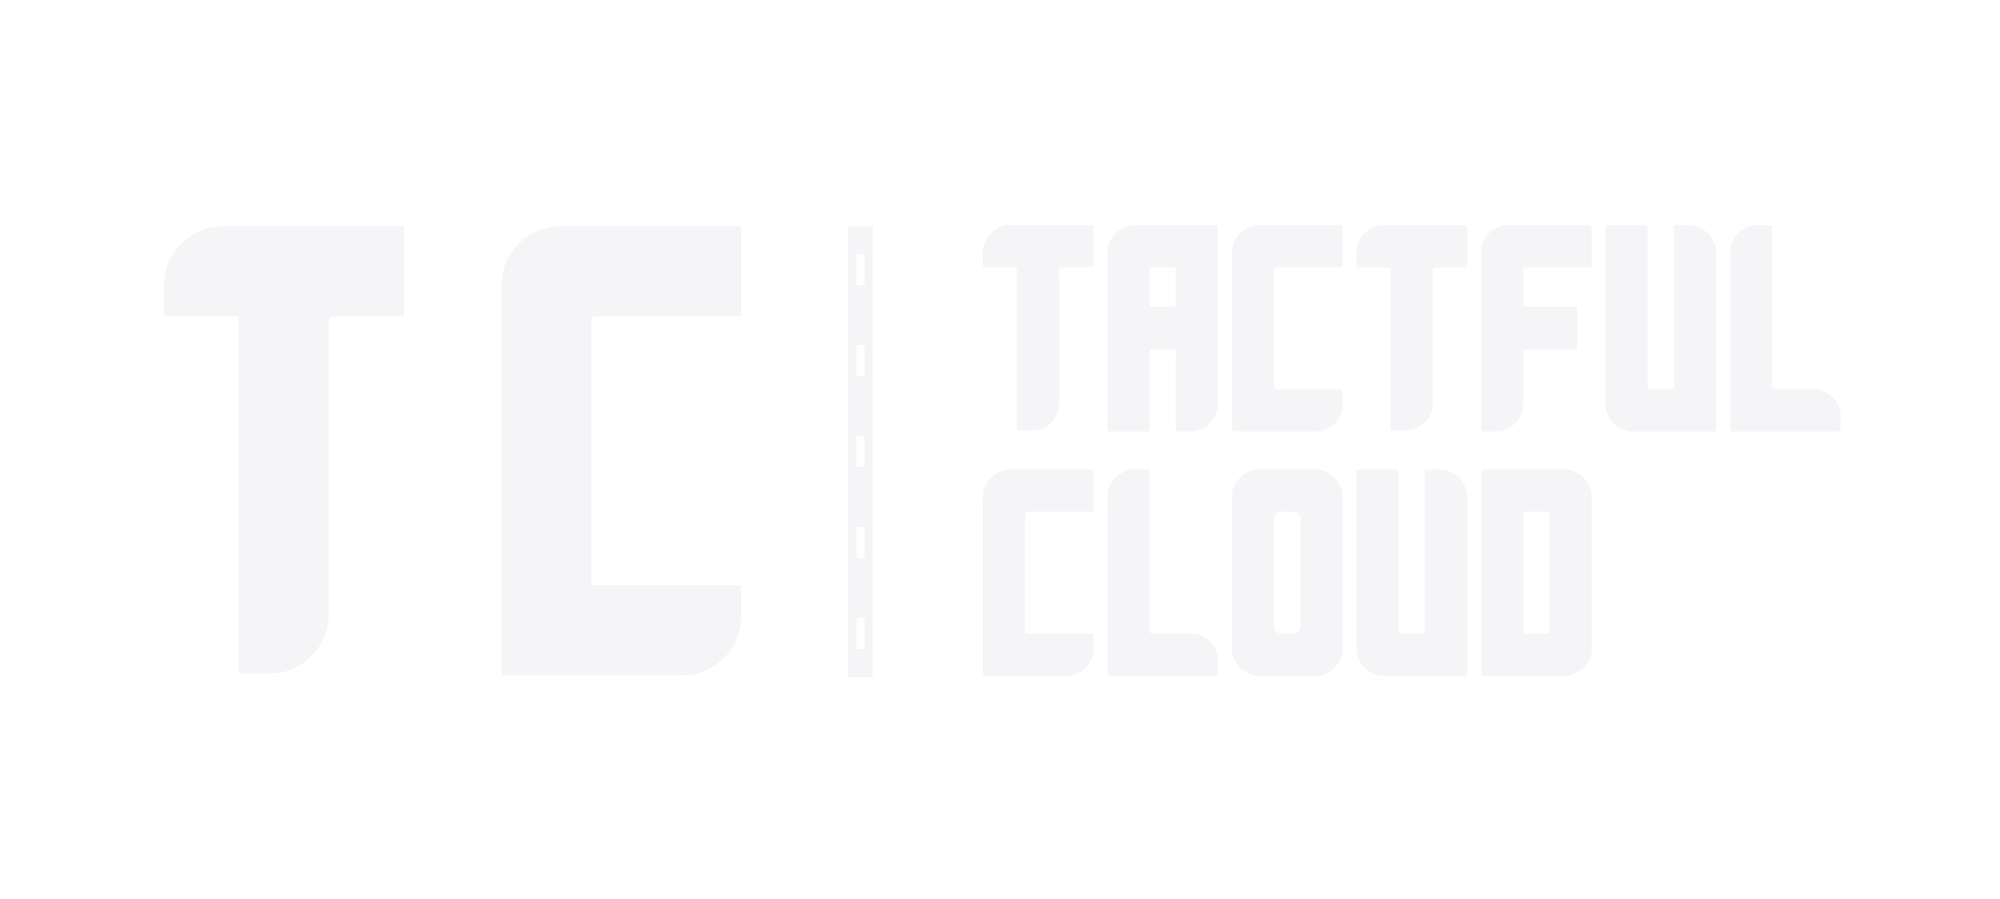 Tactful Cloud